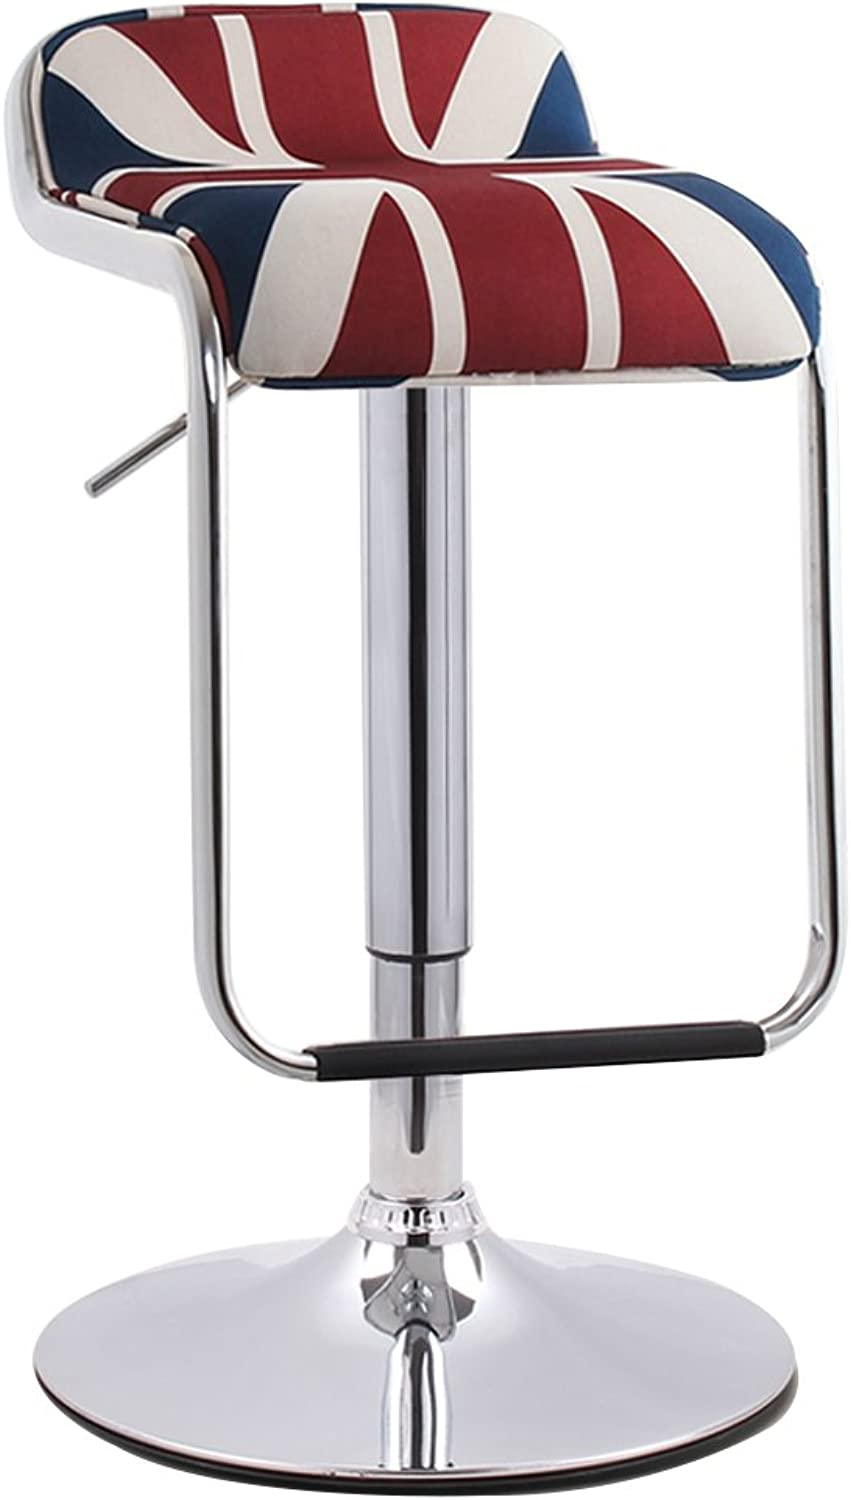 Nationwel@ PU Leather Adjustable Swivel Gas Lift Bar Stools,360 Degree redary,Max Weight Capacity 130kg,12 colors (color   White, Size   38.5cm)